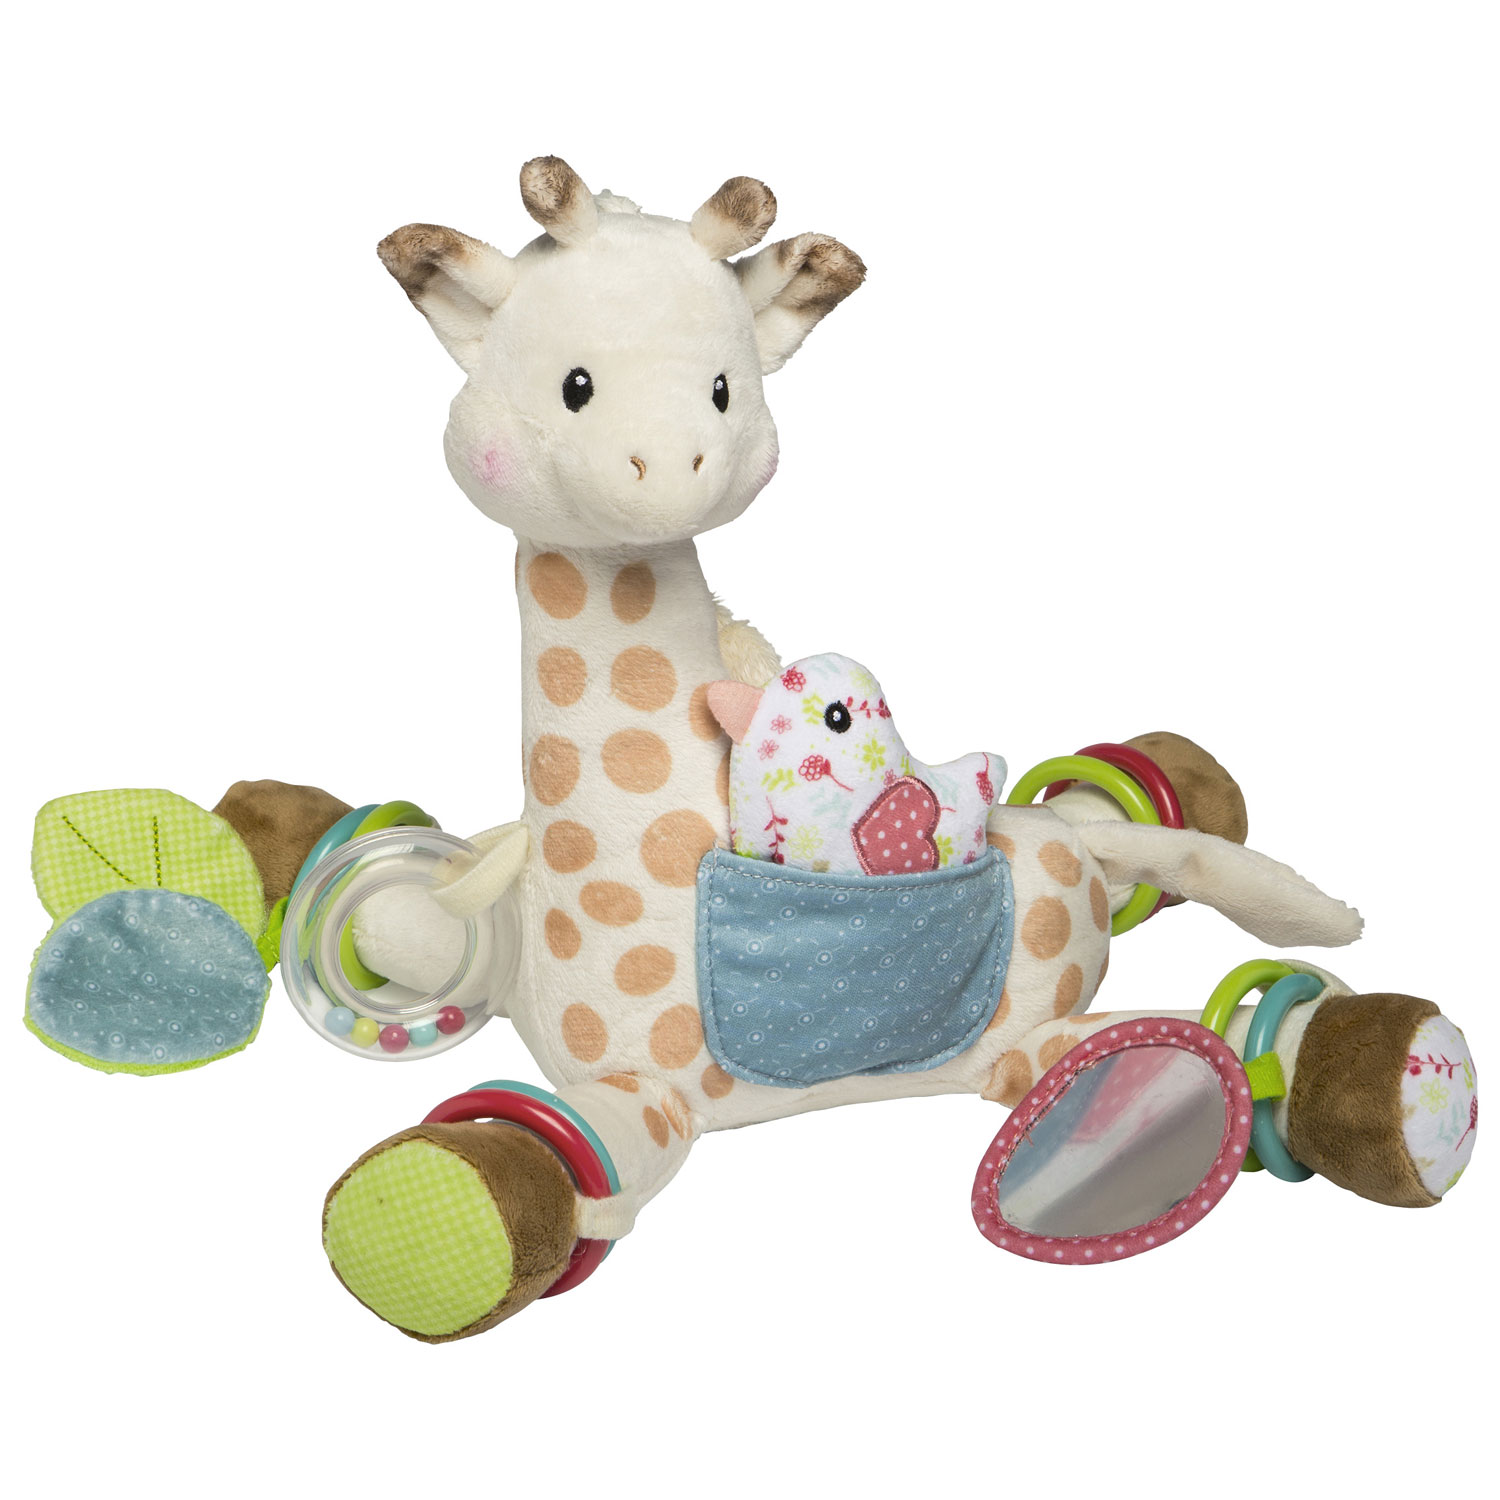 buy for baby or mom - sophie the giraffe plush